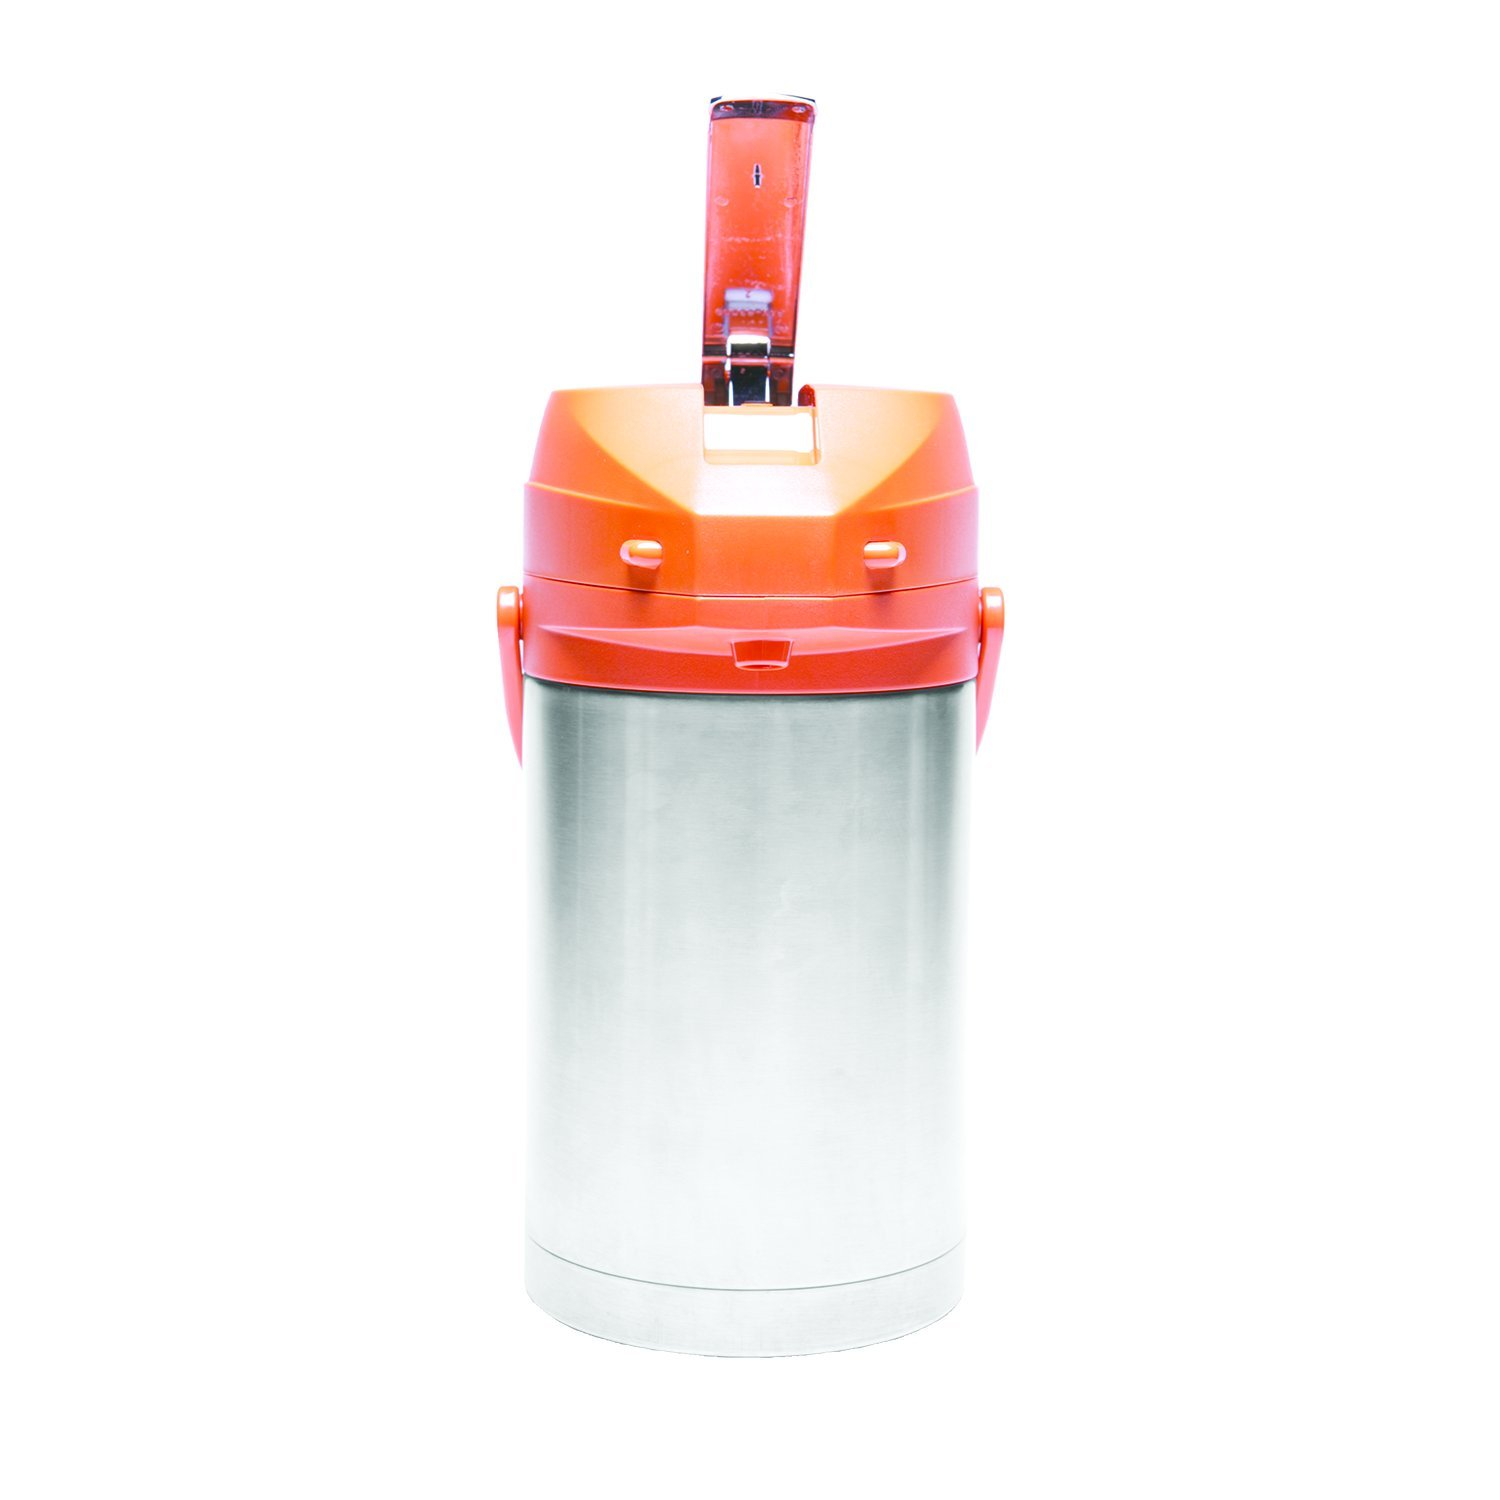 Service Ideas CTAL25OR Airpot with Lever, Stainless Steel Lined, 2.5 L, Orange Top